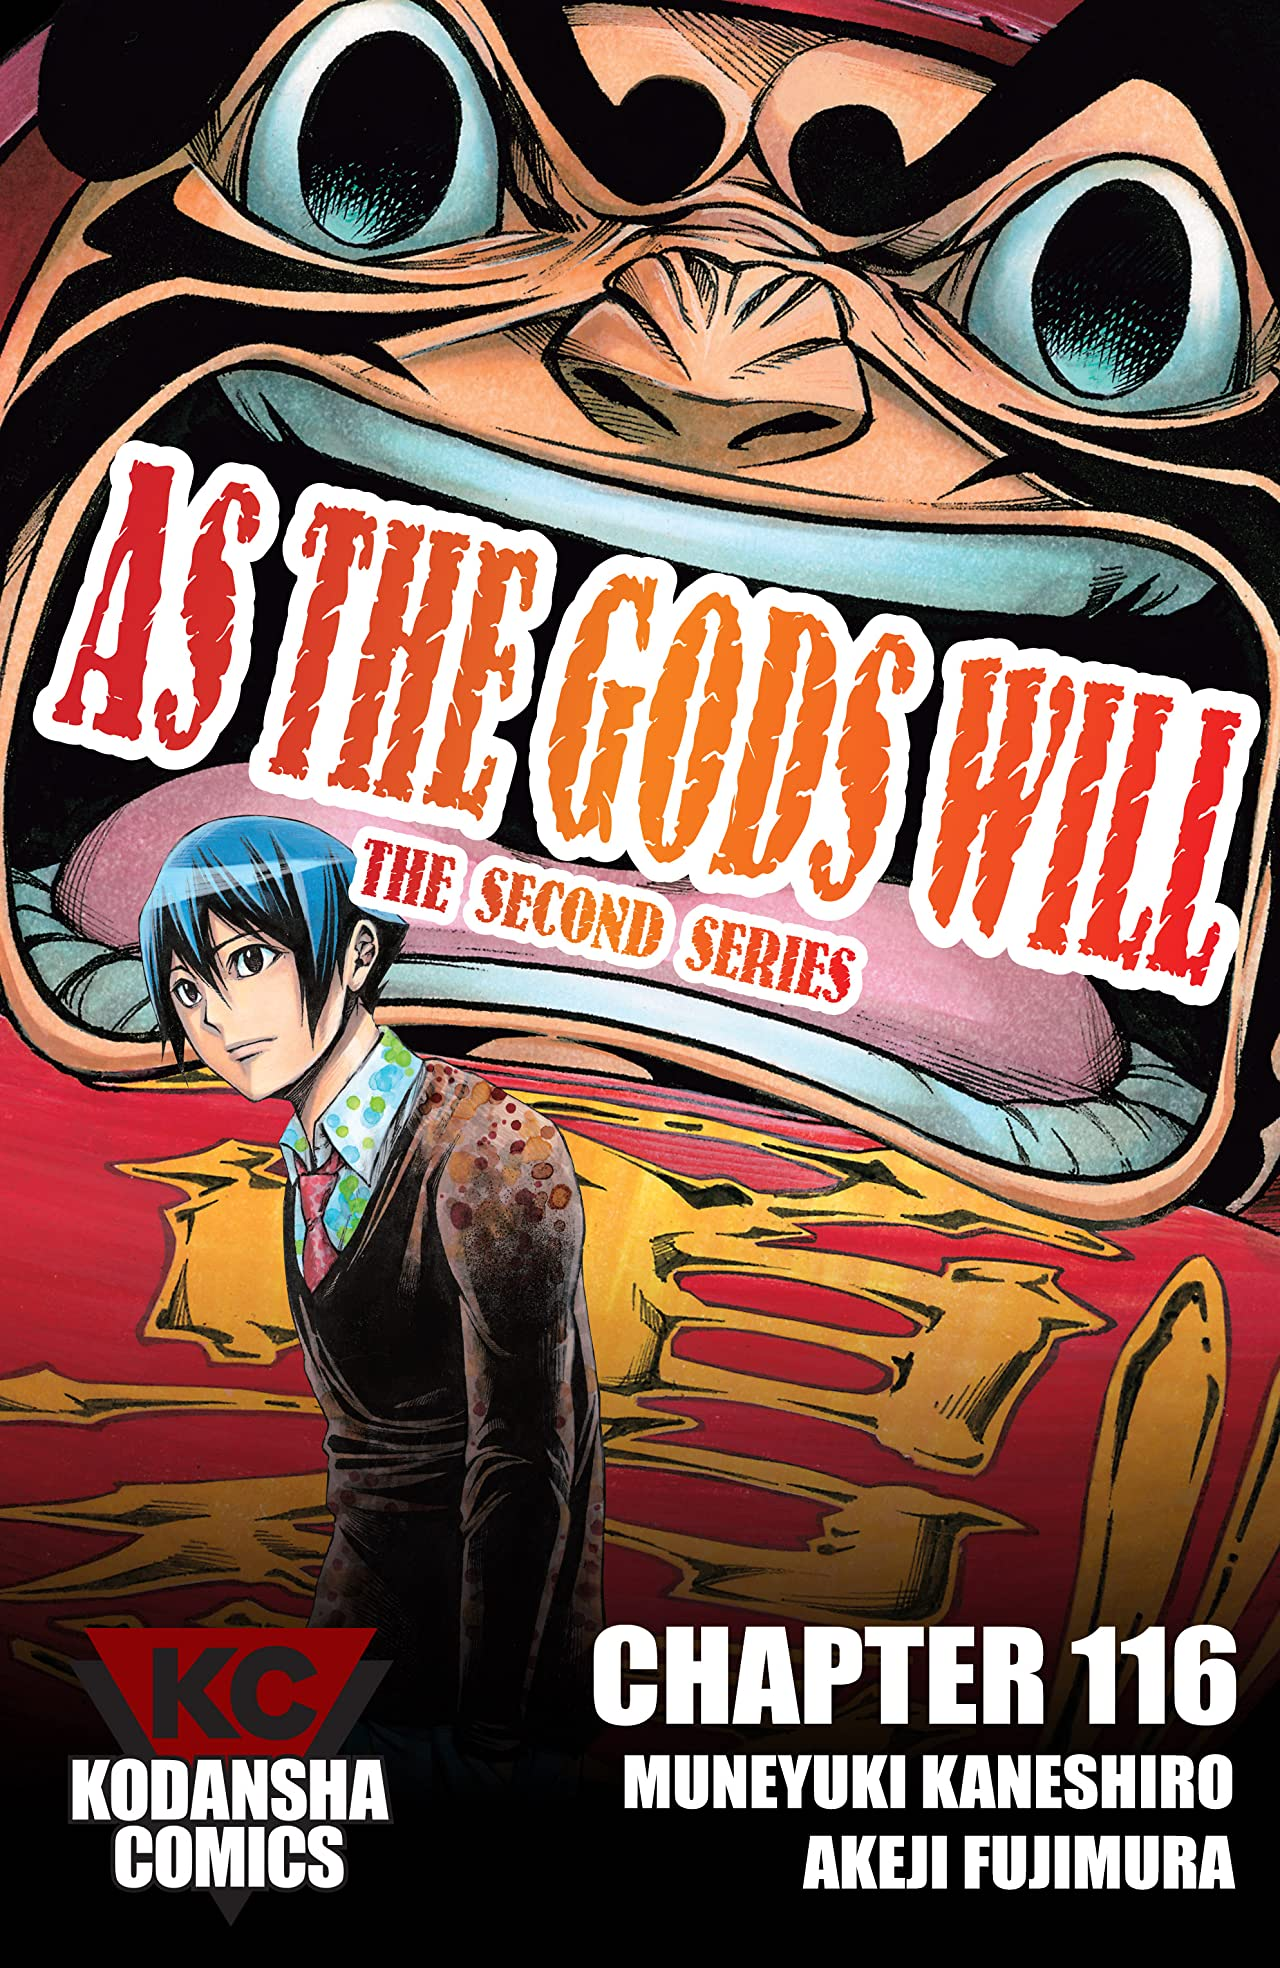 As The Gods Will: The Second Series #116